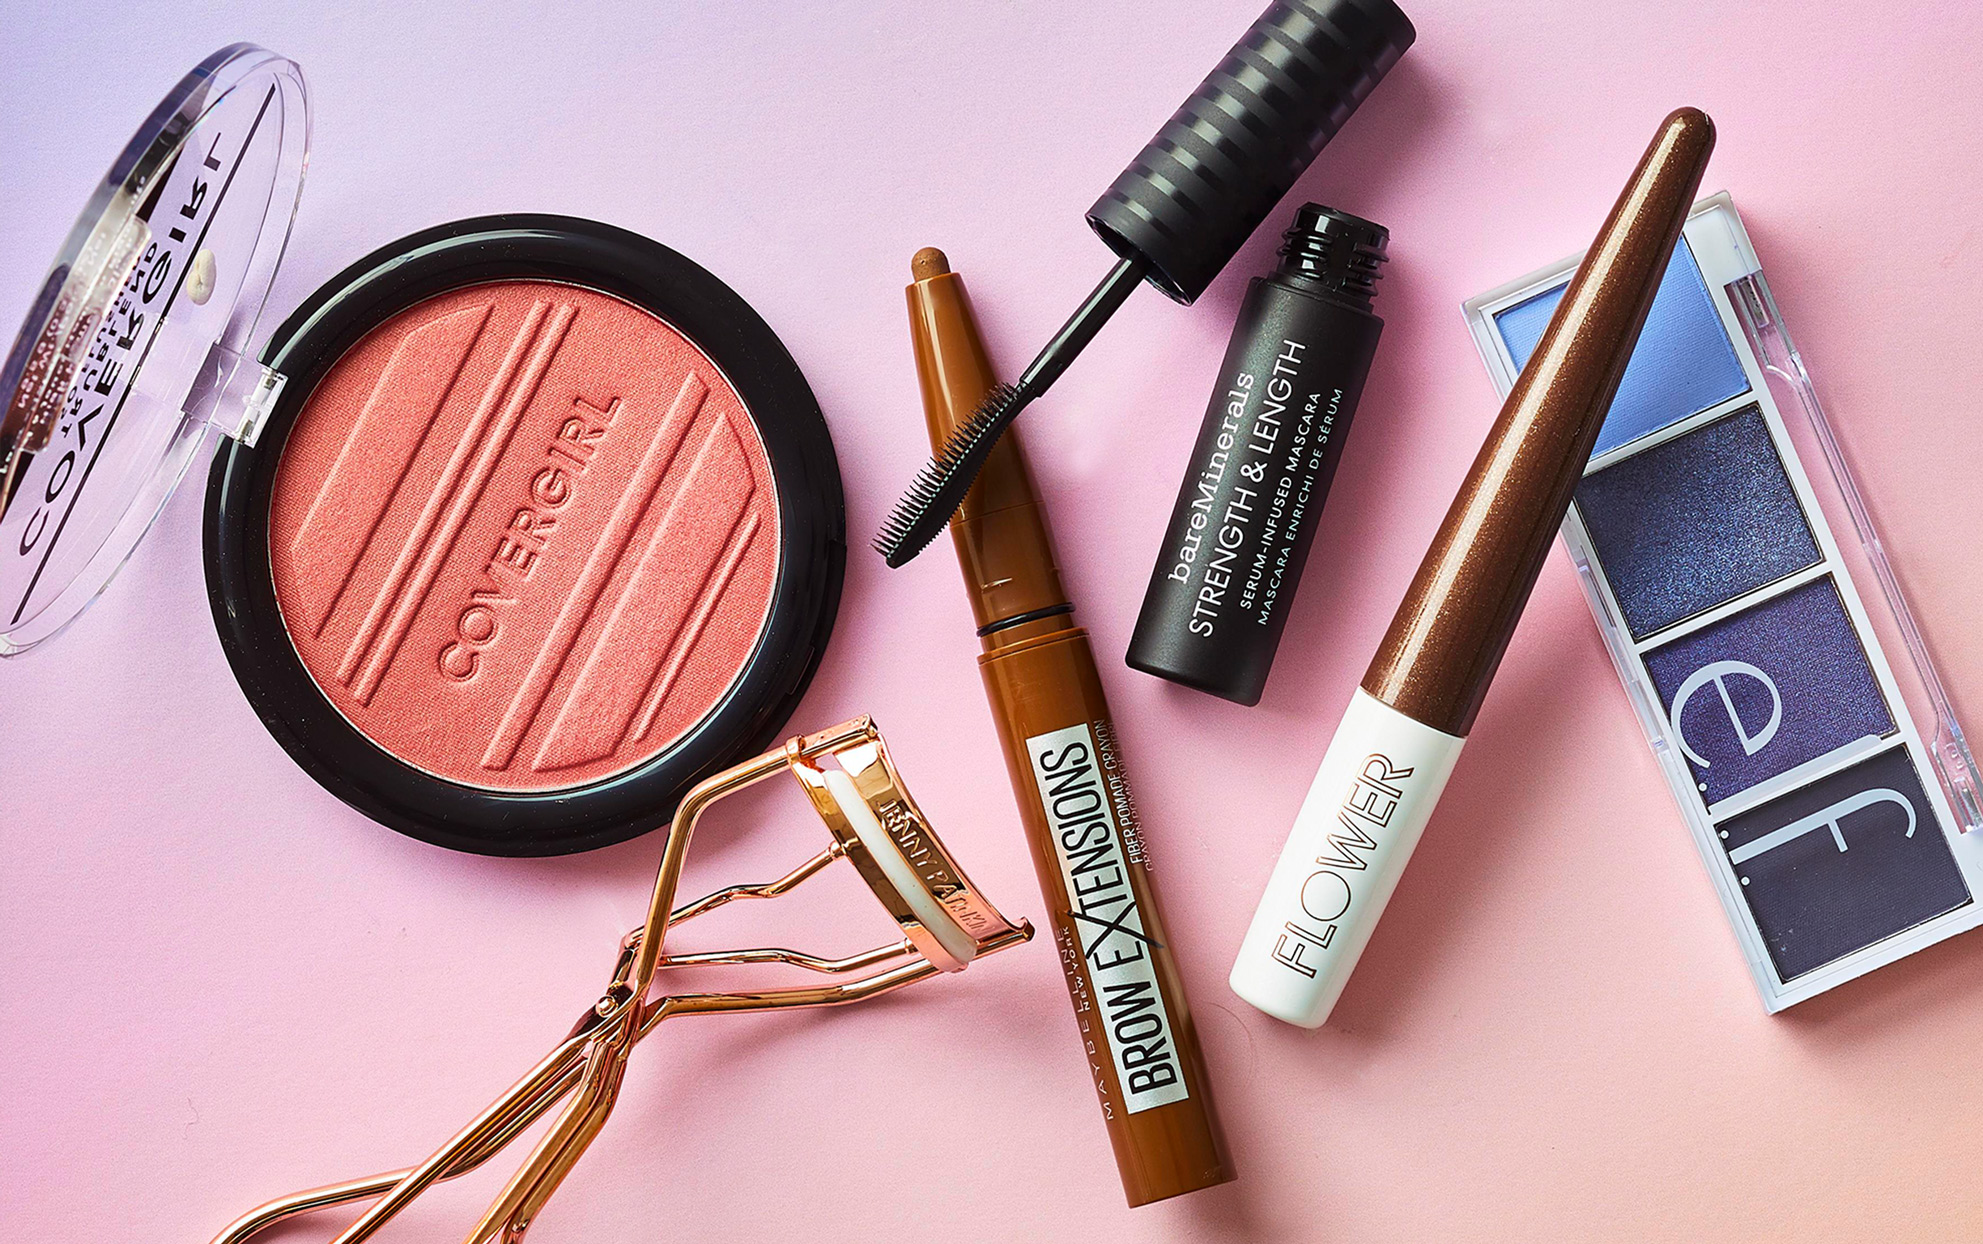 Several makeup beauty products on a pink background